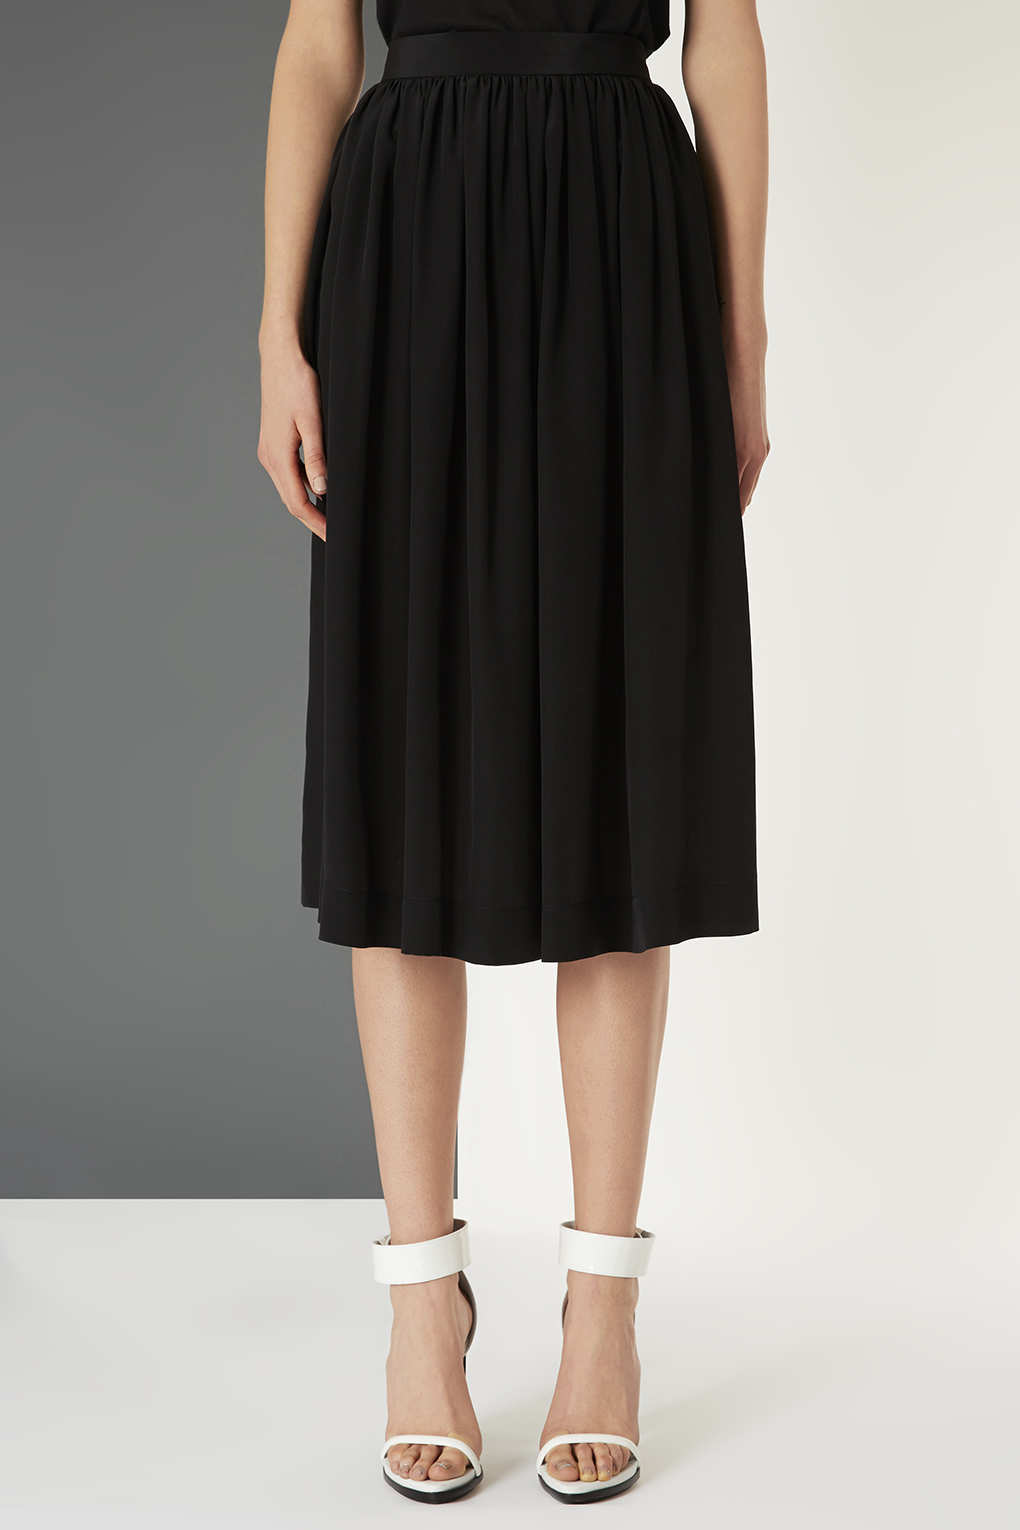 Topshop Silk Midi Skirt By Boutique in Black | Lyst